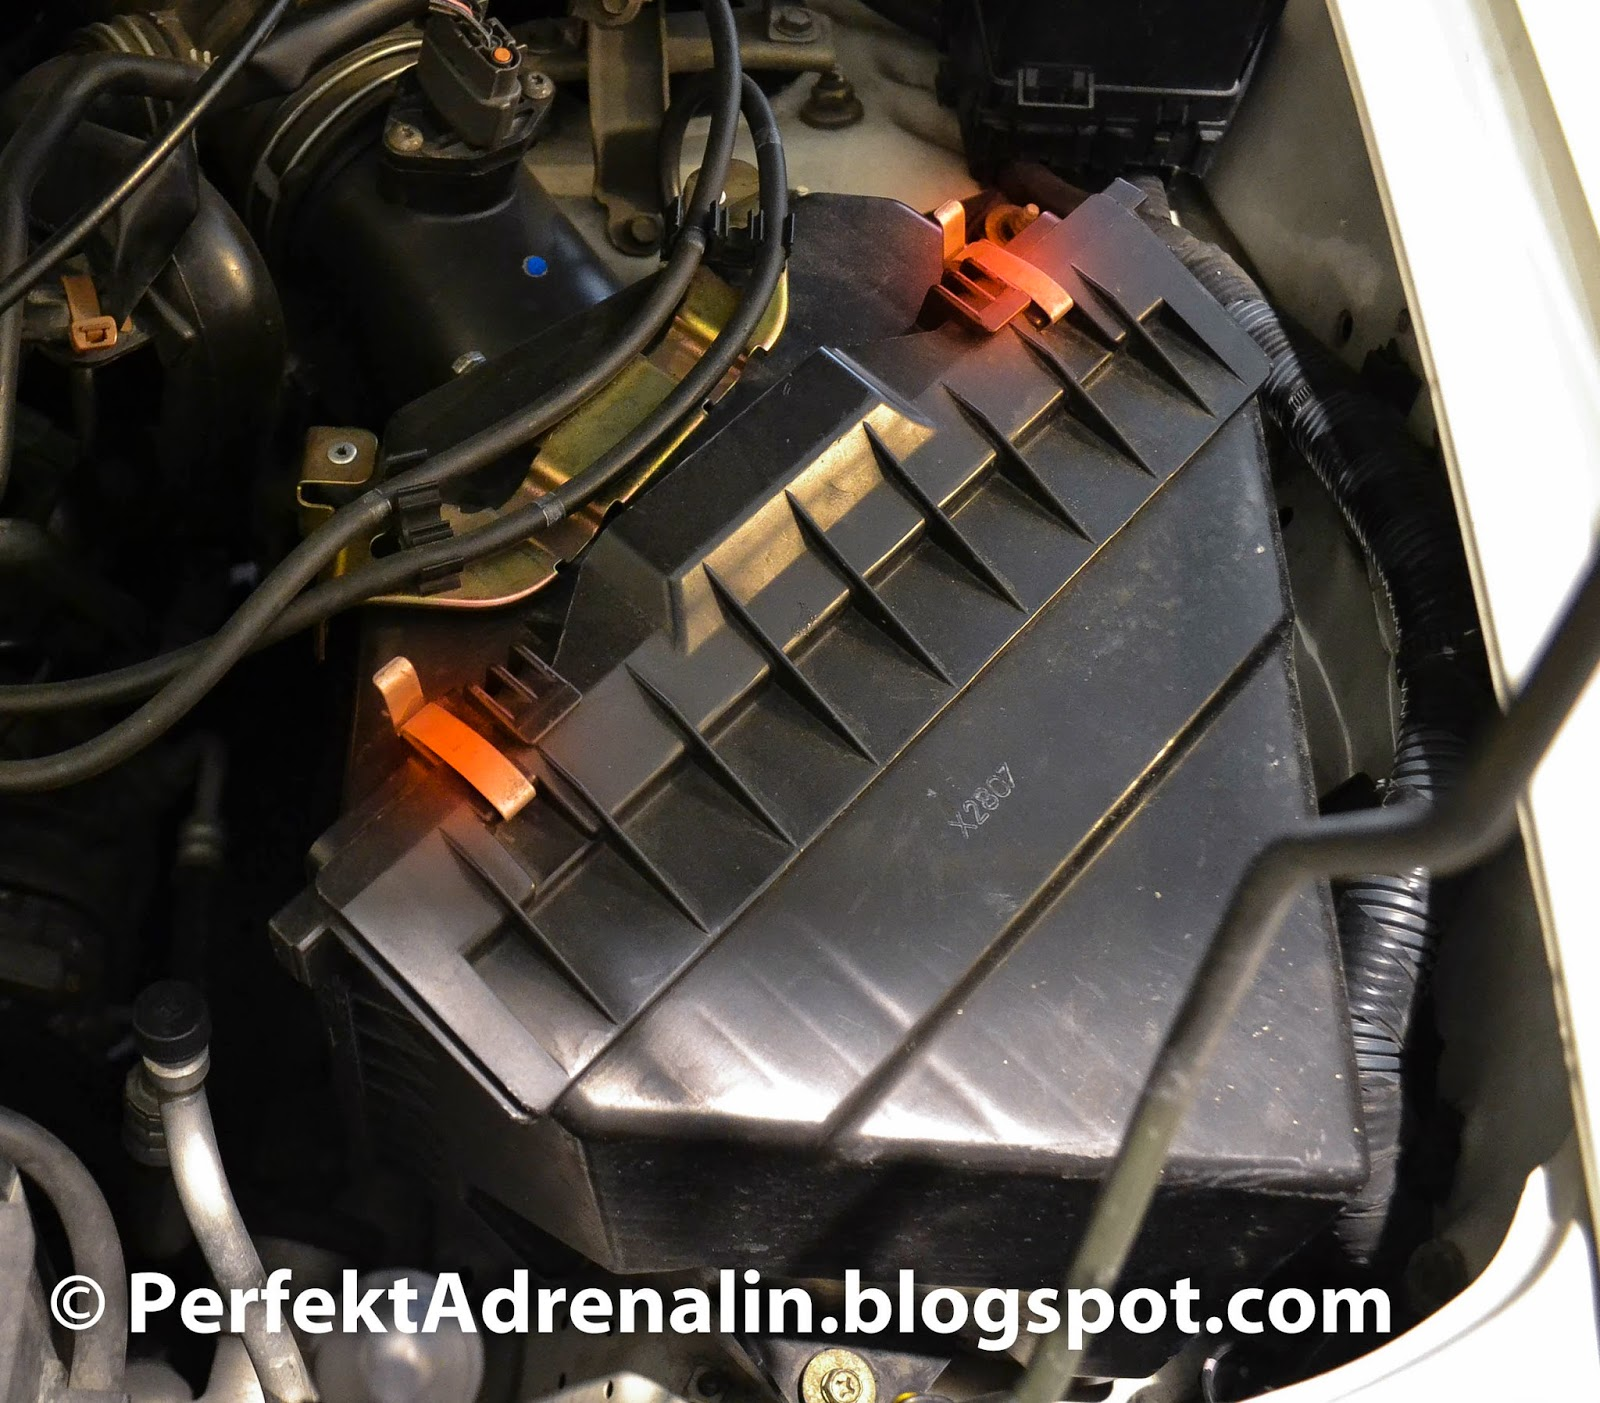 Perfektadrenalin diy infiniti qx4 pathfinder air filter 2001 2003 locate the clips and pop them open pull the tray holding the air filter out clips are highlighted in red vanachro Gallery